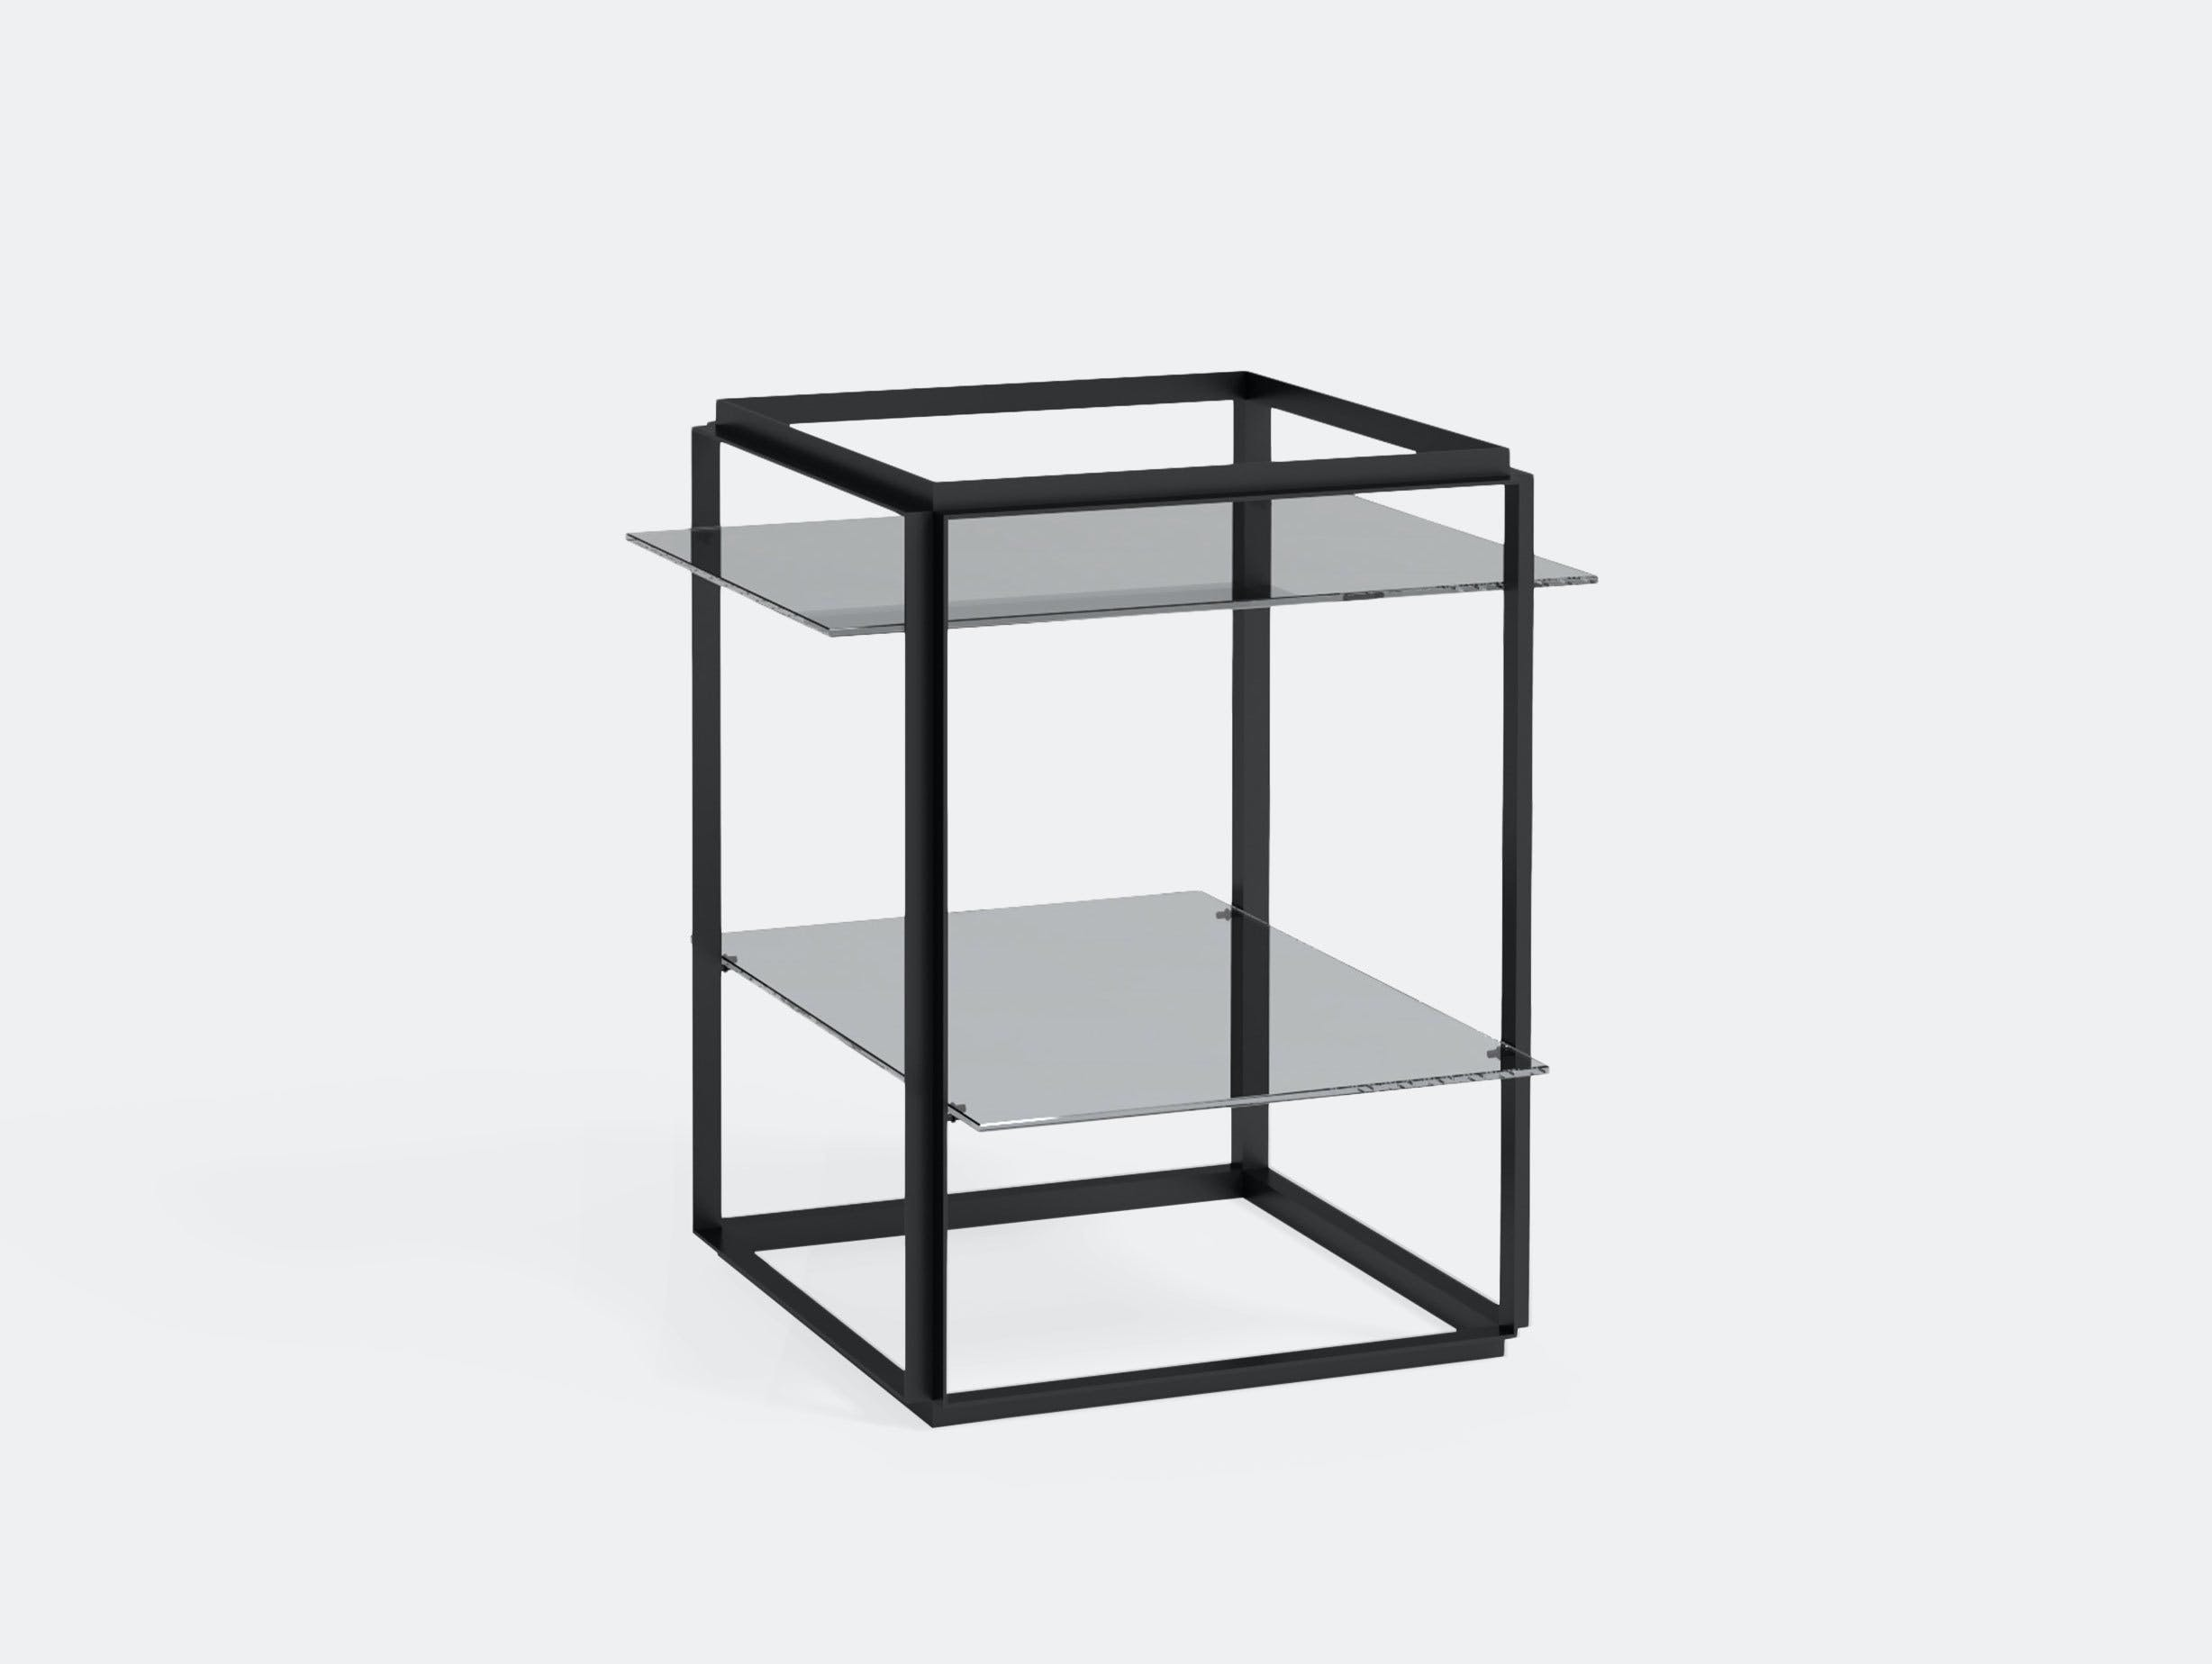 New Works Florence Side Table Black Humlevik Hedemann